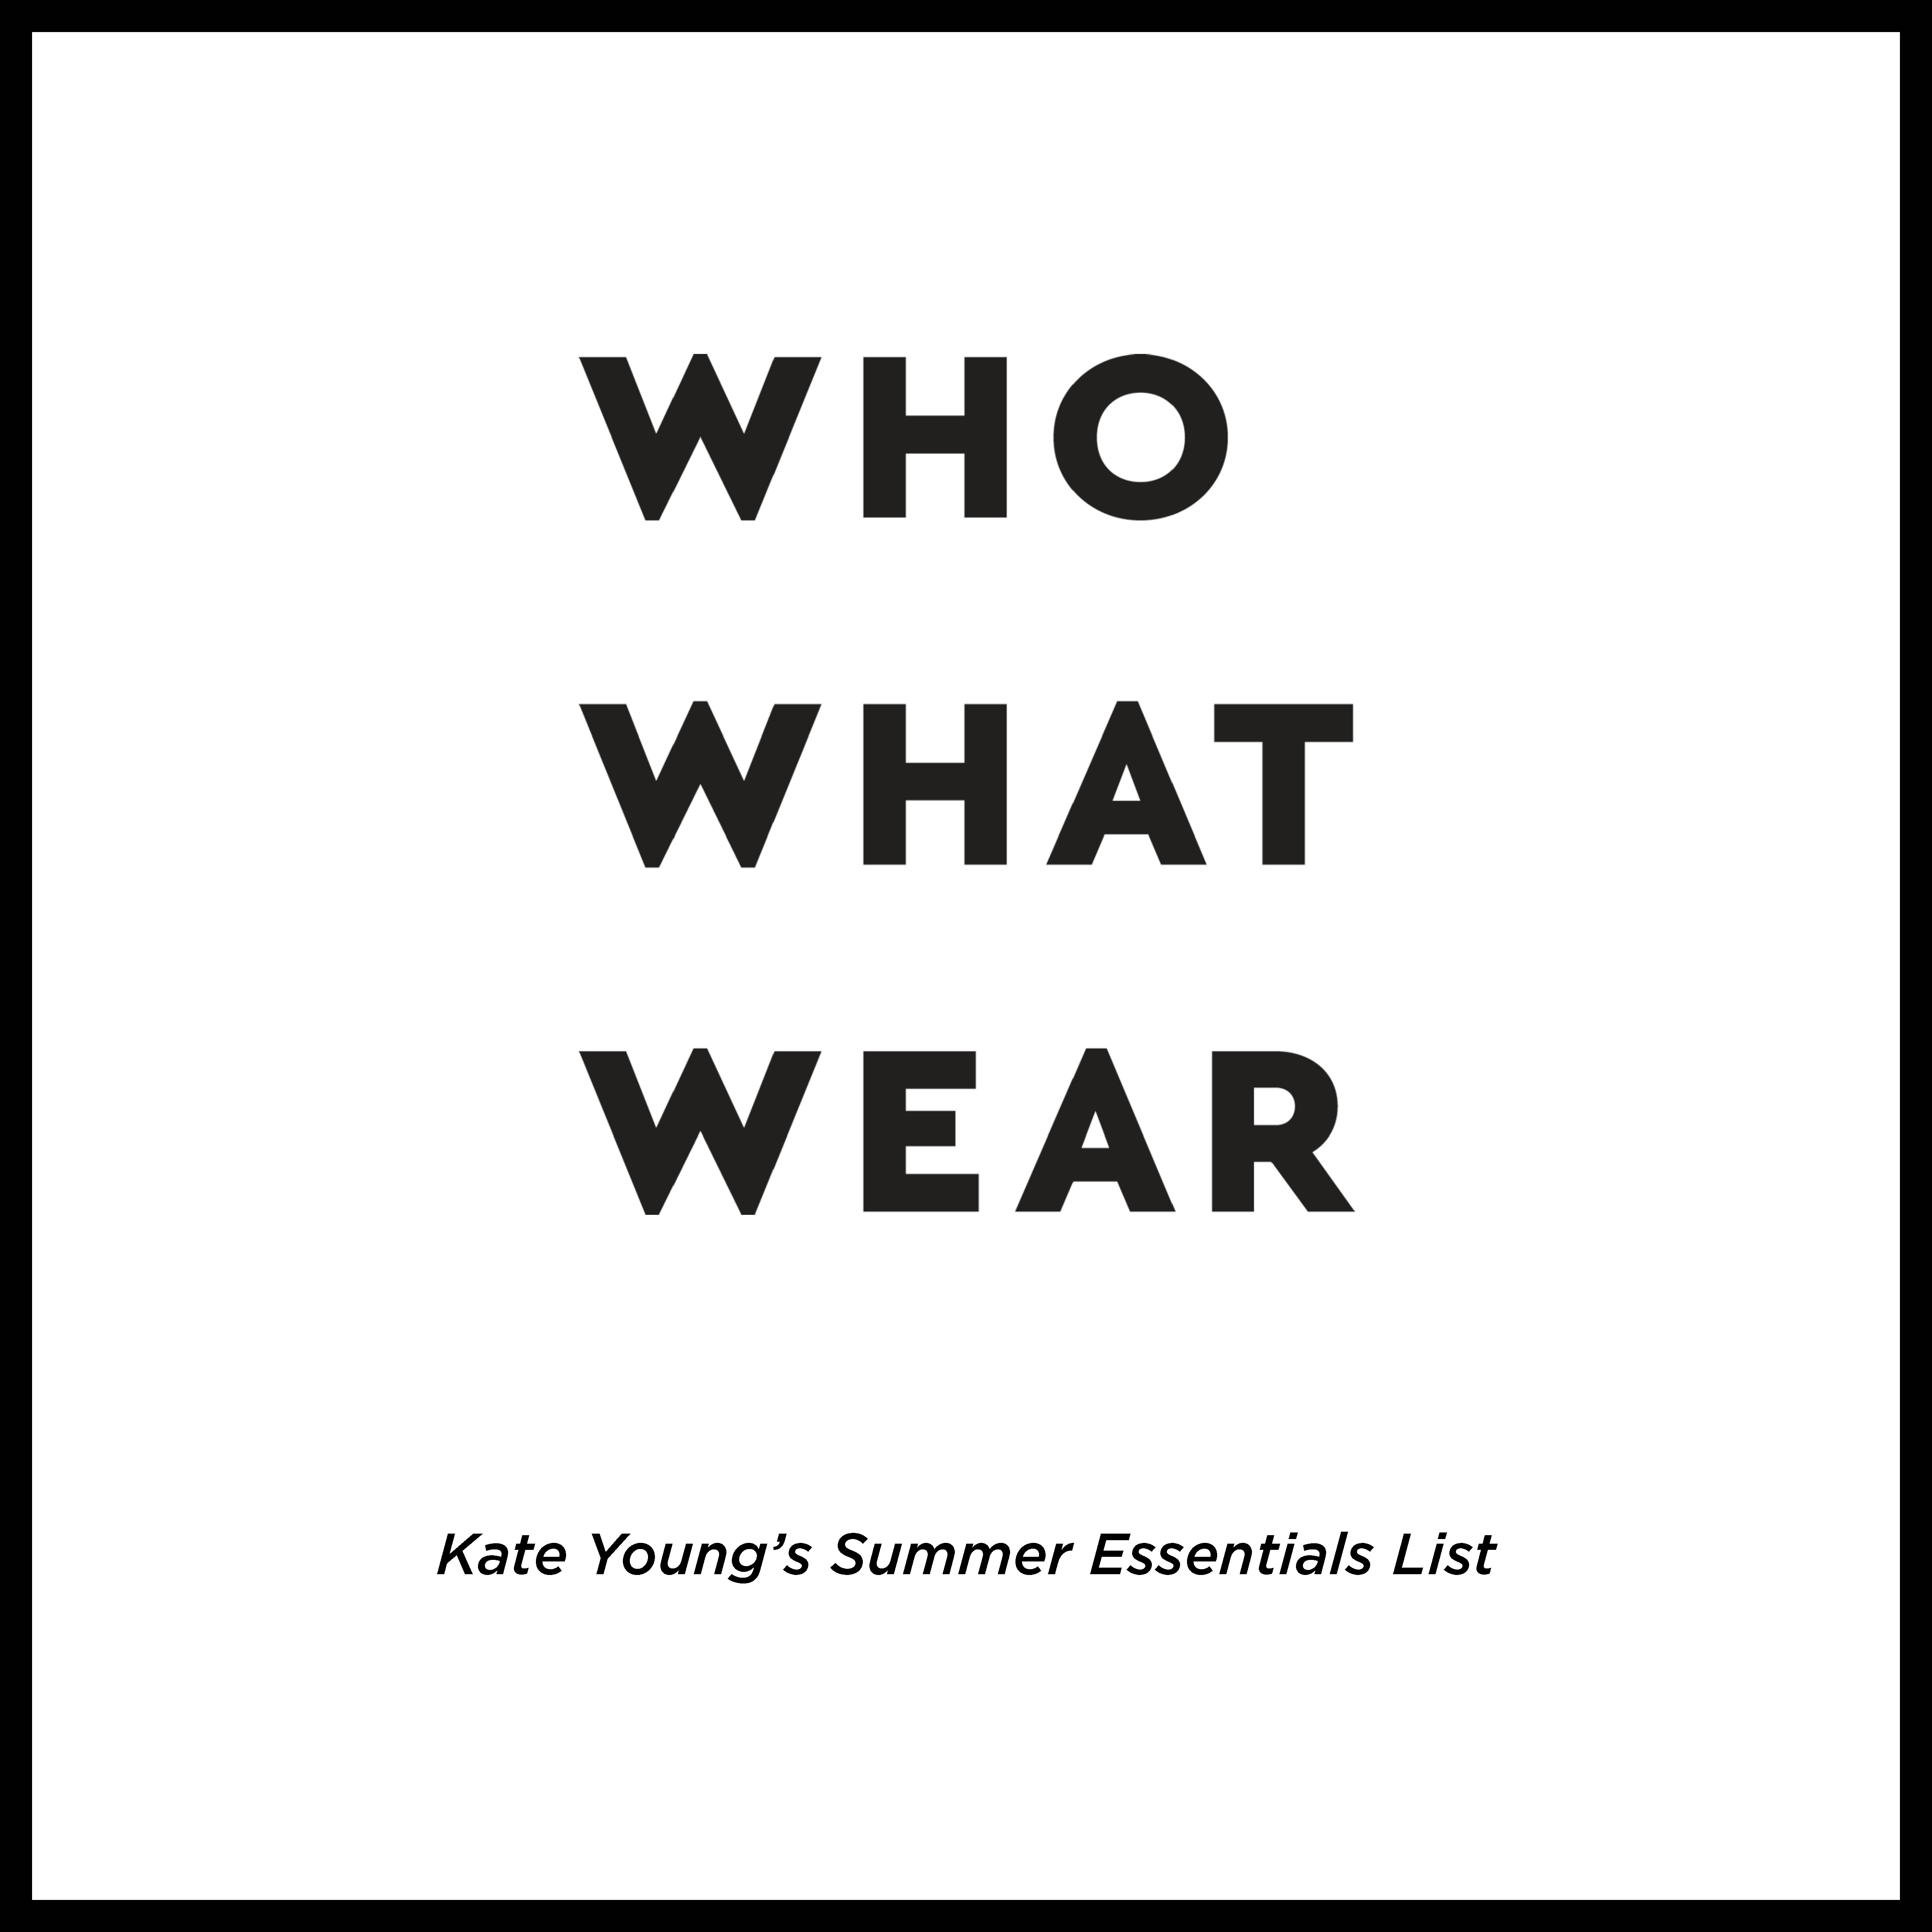 KATE YOUNG FOR TURA FEATURED ON WHO WHAT WEAR IN KATE YOUNG'S SUMMER ESSENTIALS LIST